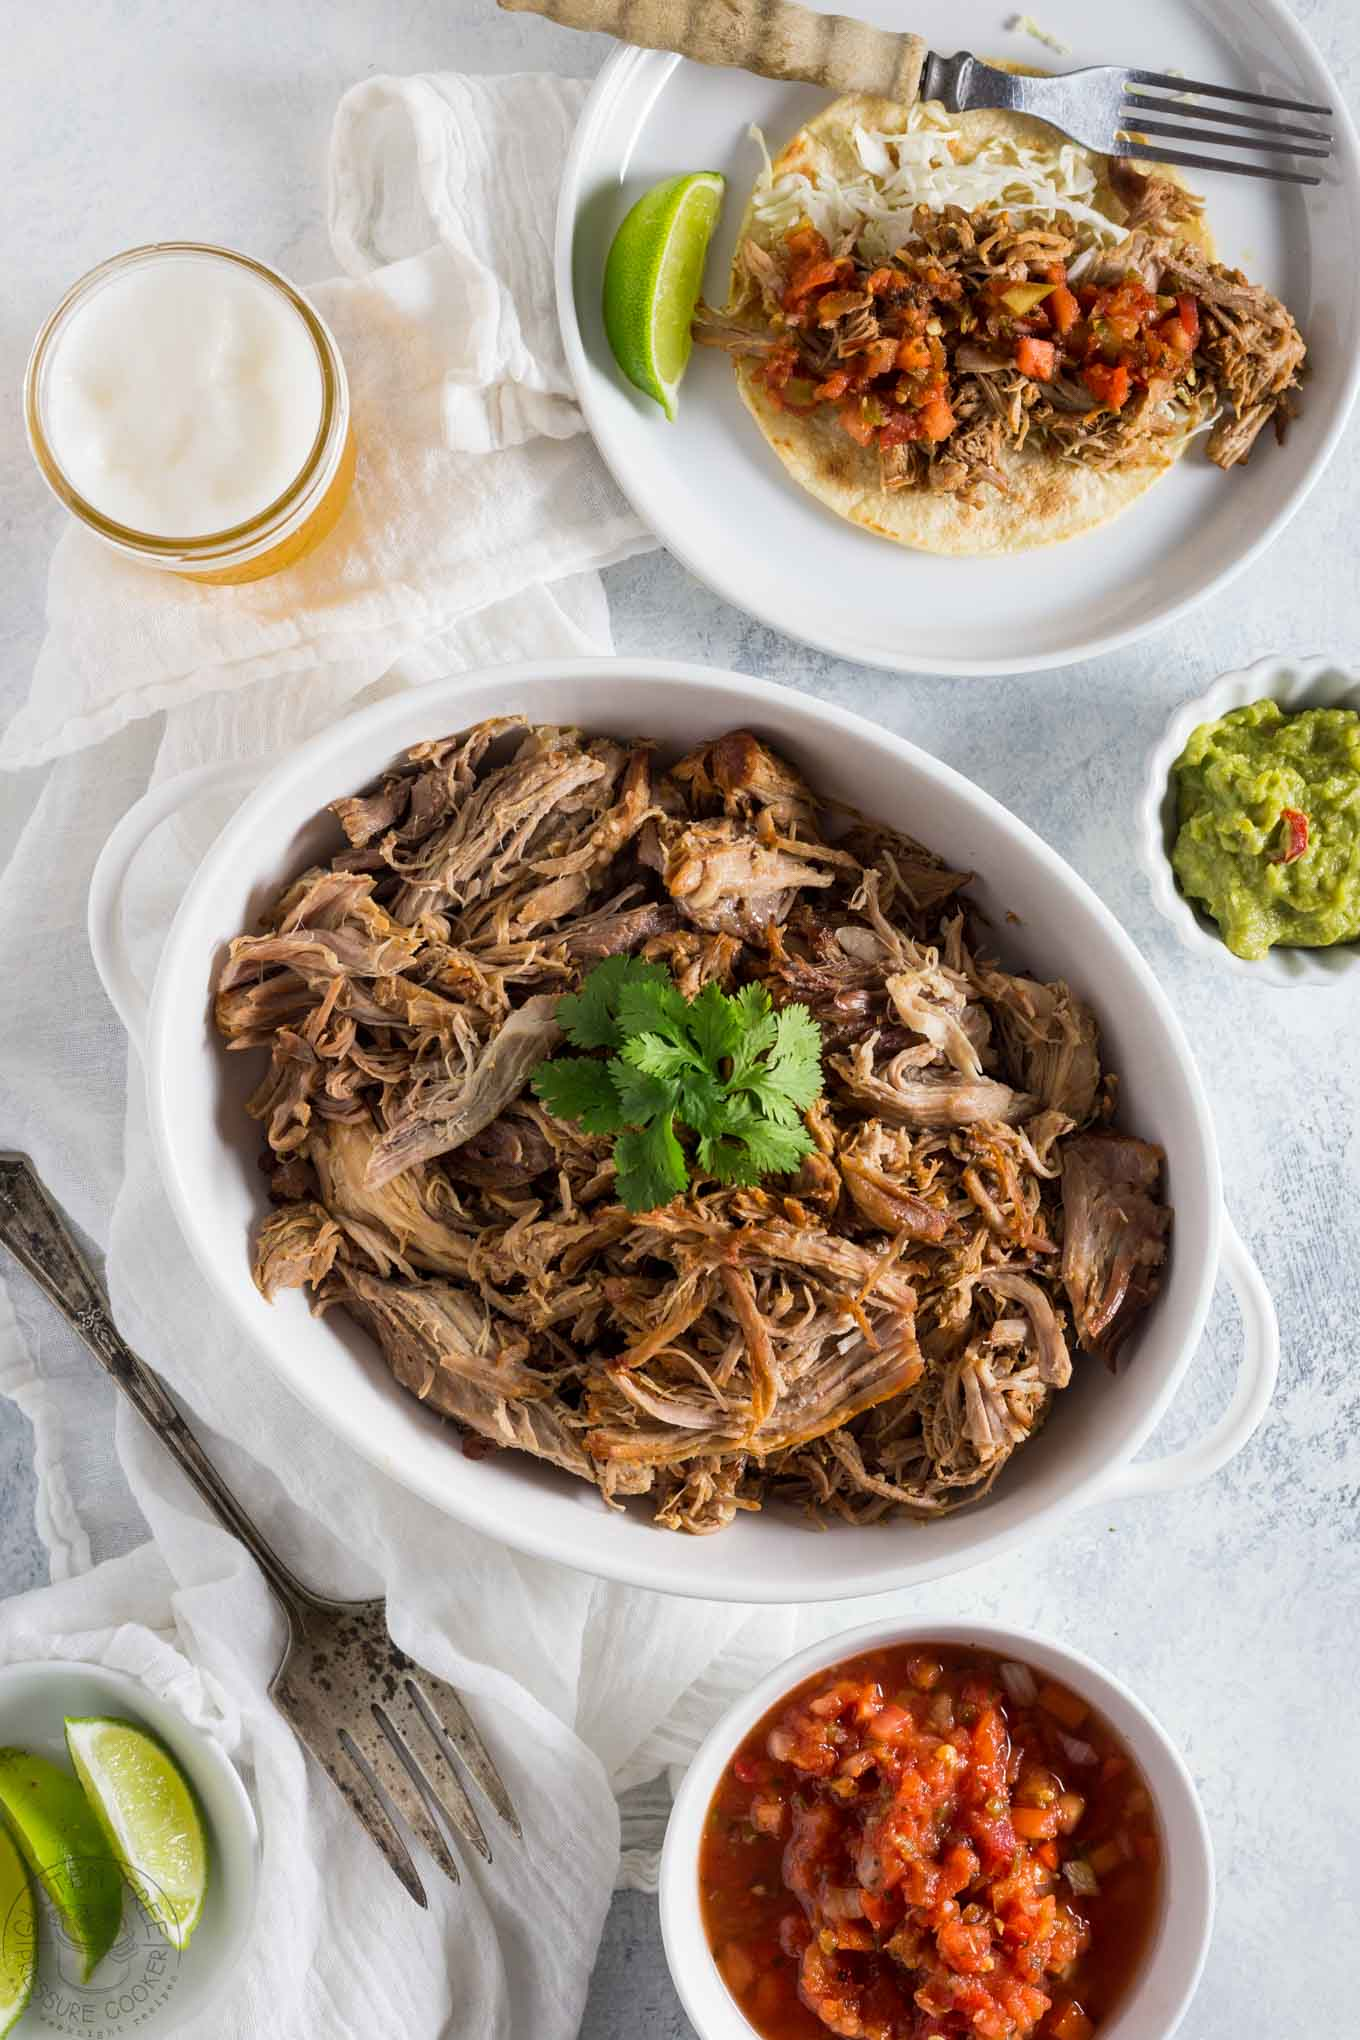 Try this Pressure Cooker Pulled Pork Carnitas recipe in your Instant Pot in a fraction of the time it takes in the oven!